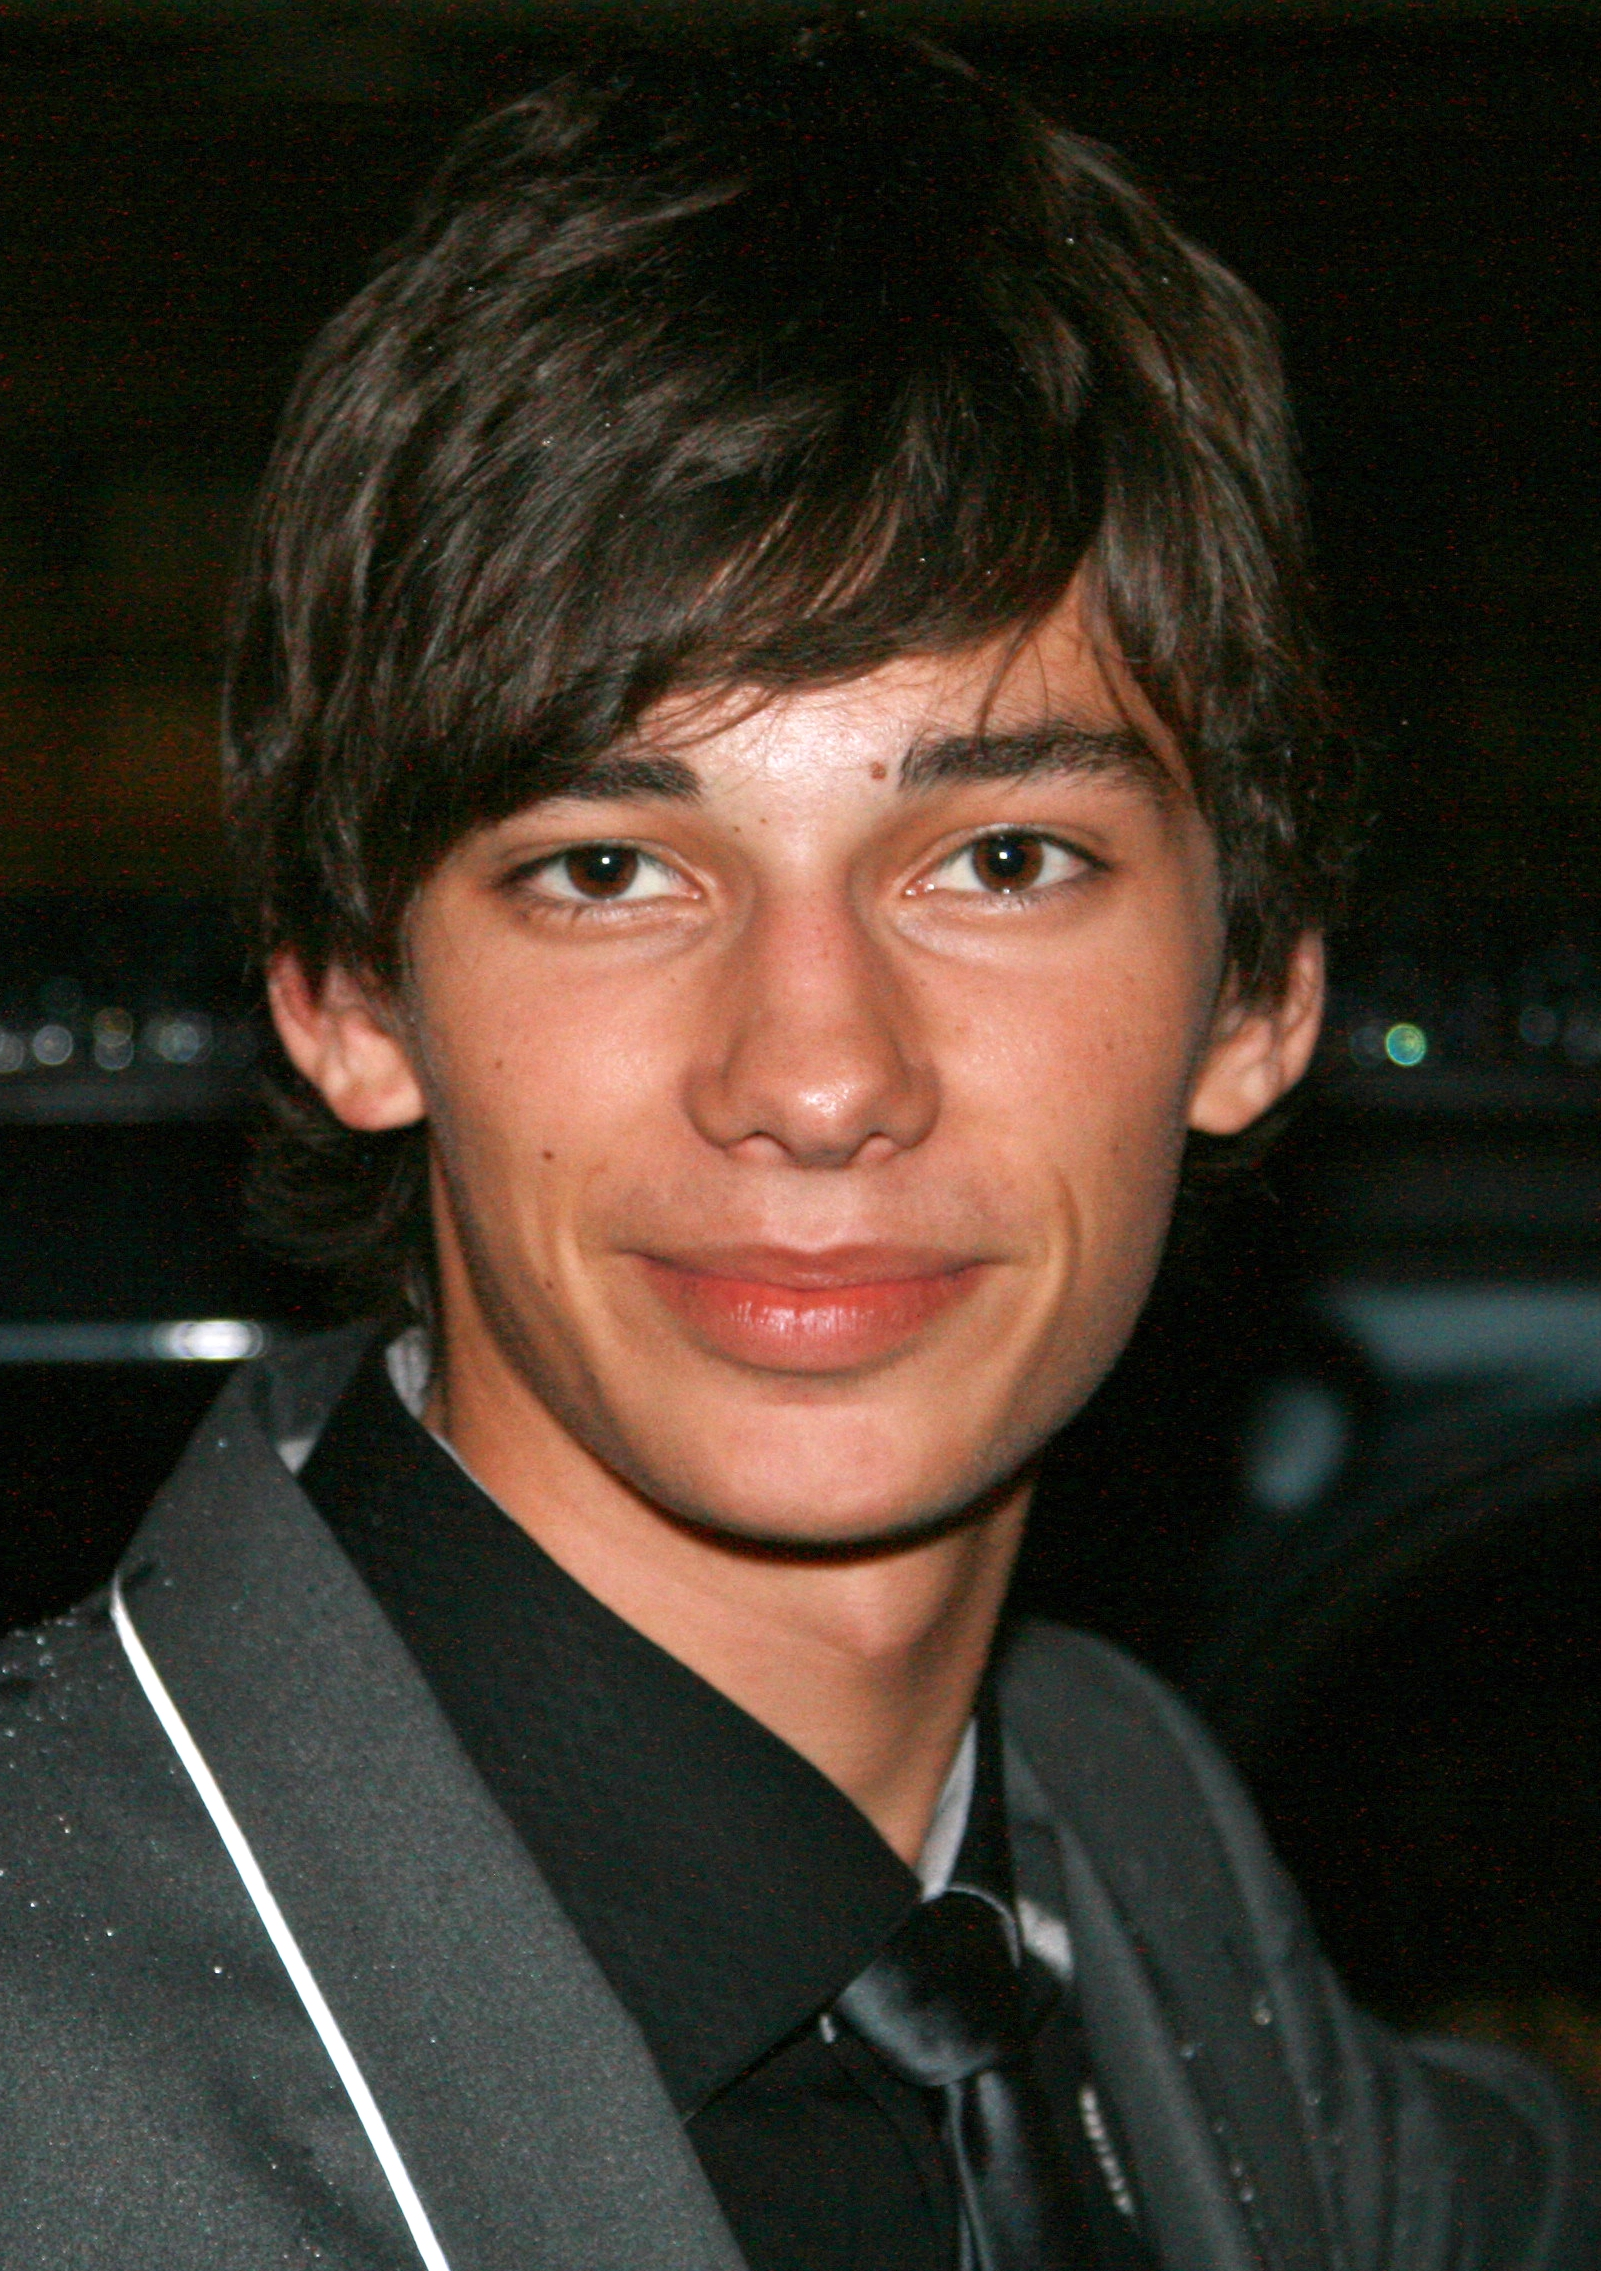 Tips: Devon Bostick, 2017s chignon hair style of the cool attractive  actor